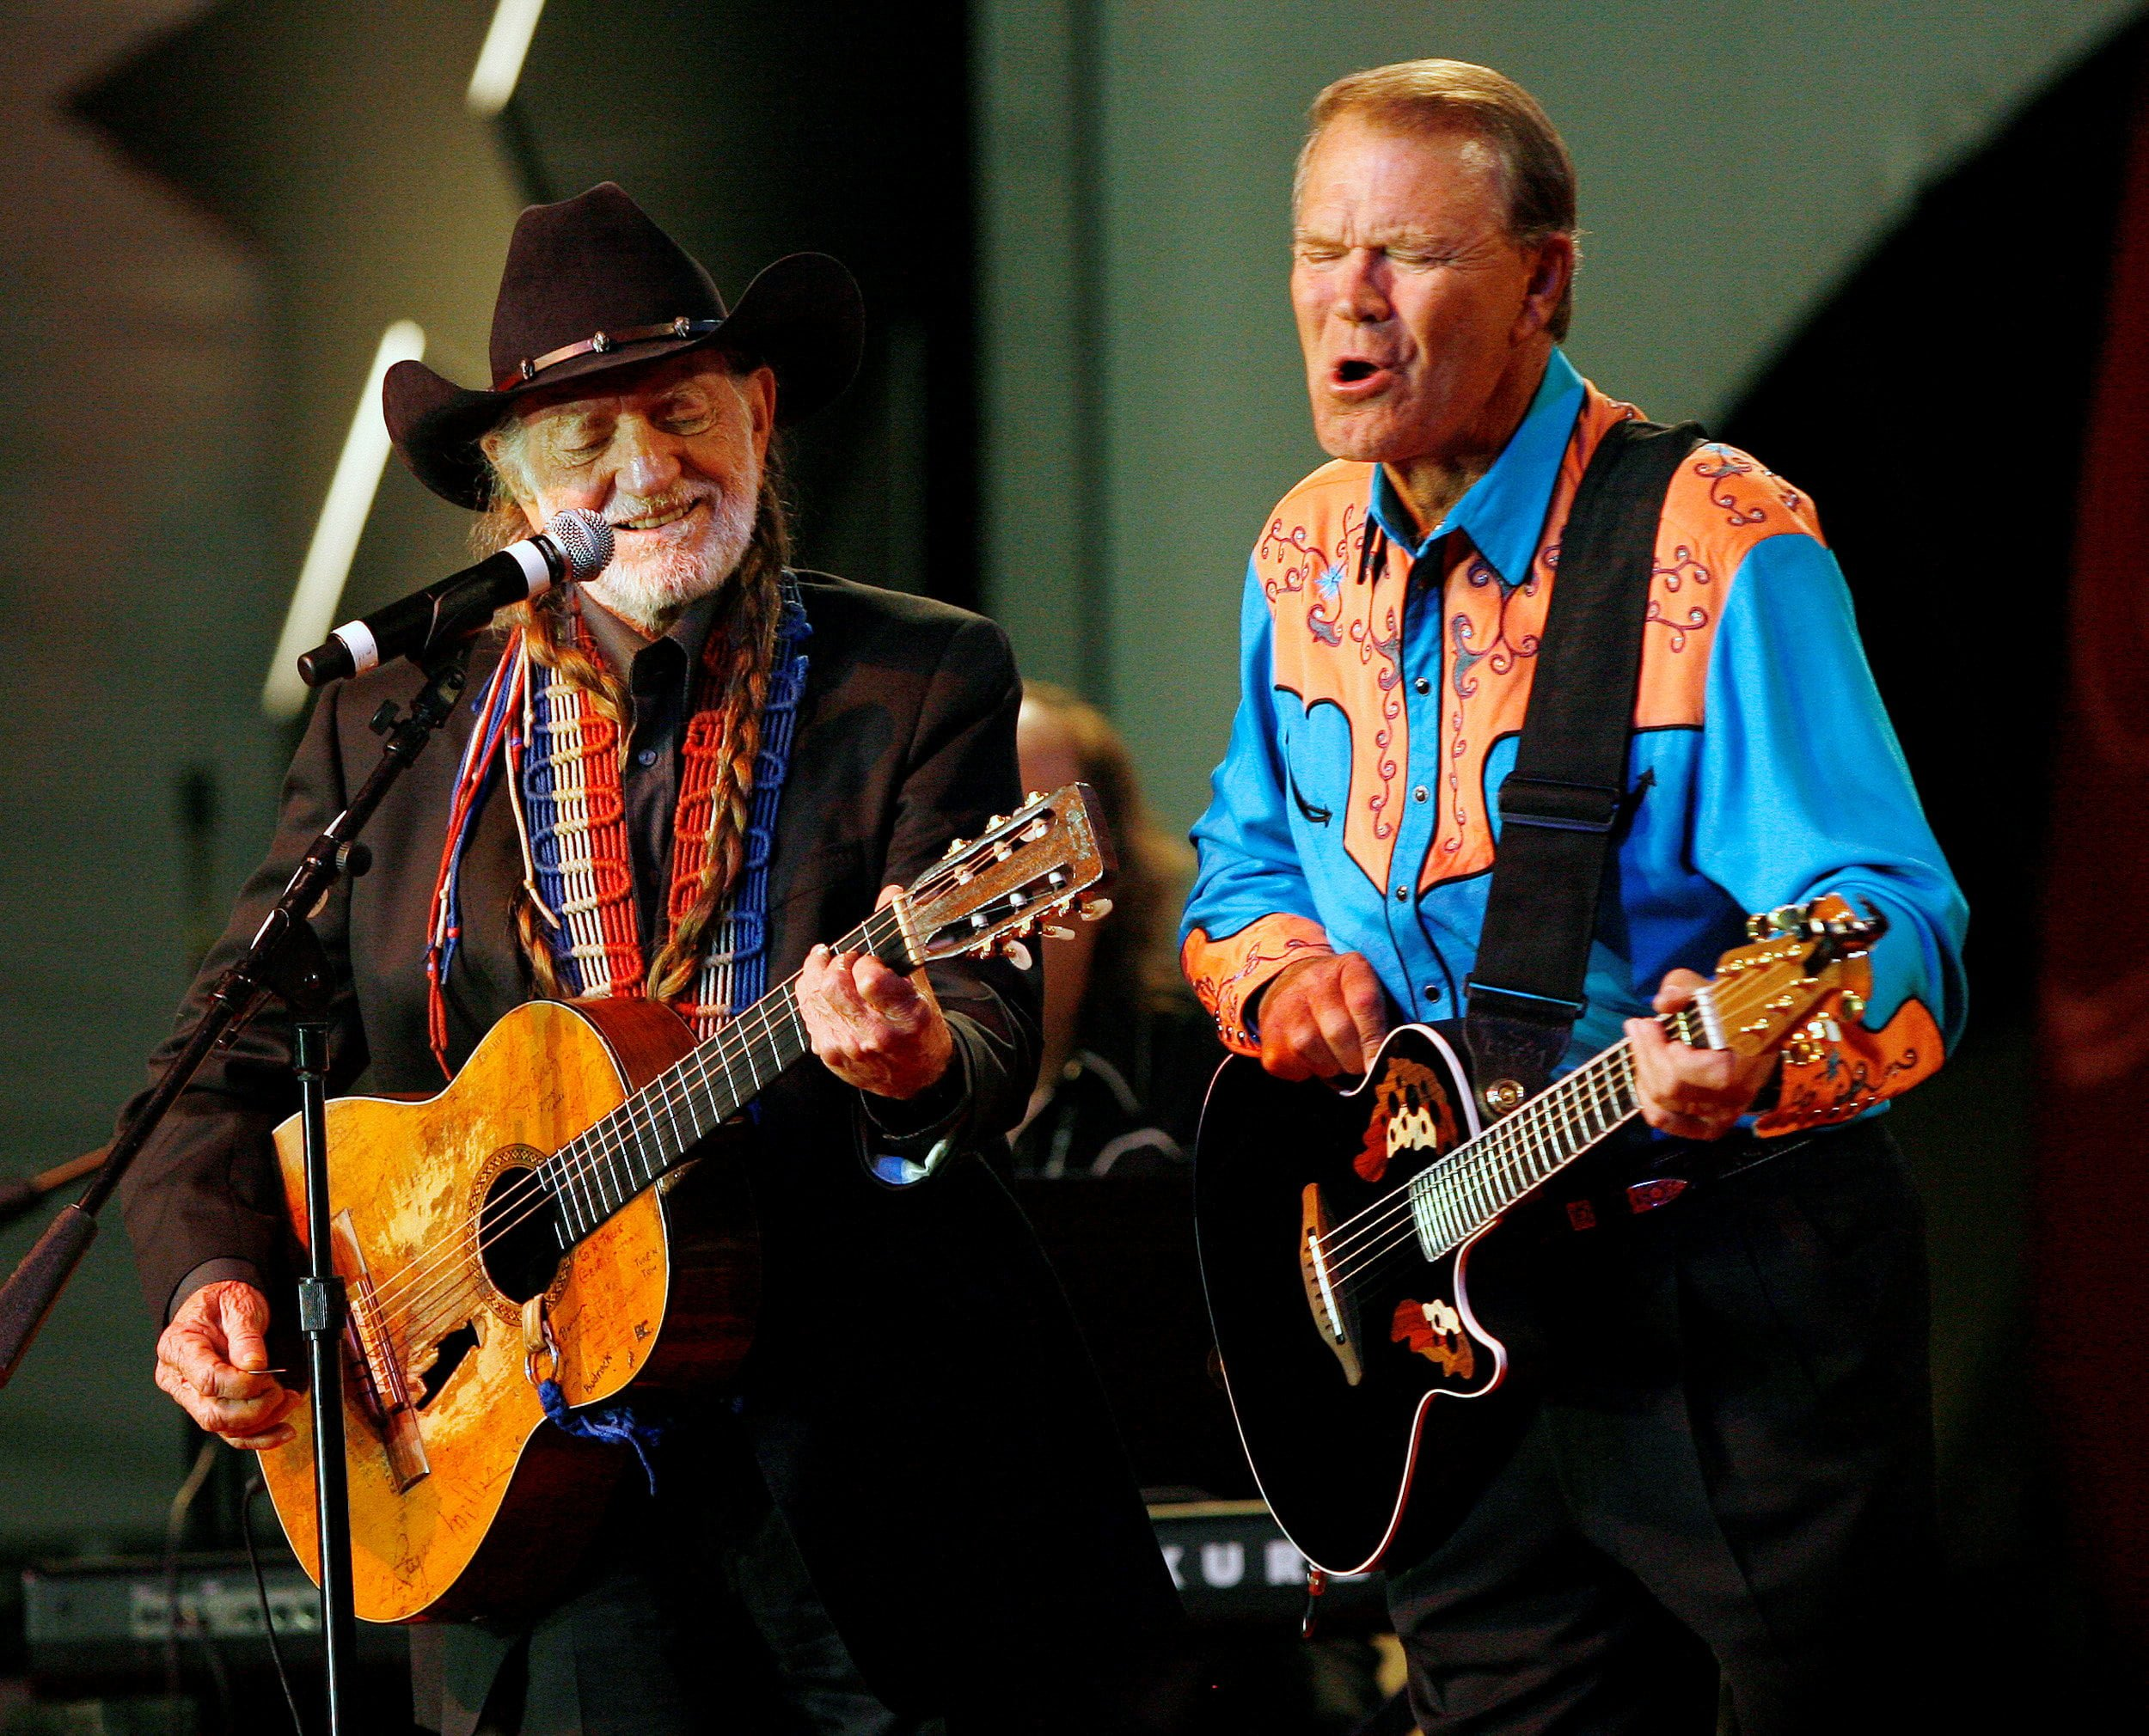 FILE PHOTO – Willie Nelson and Glen Campbell perform on stage at the 20th Autry National Center gala at the Gene Autry Western Heritage museum in Los Angeles